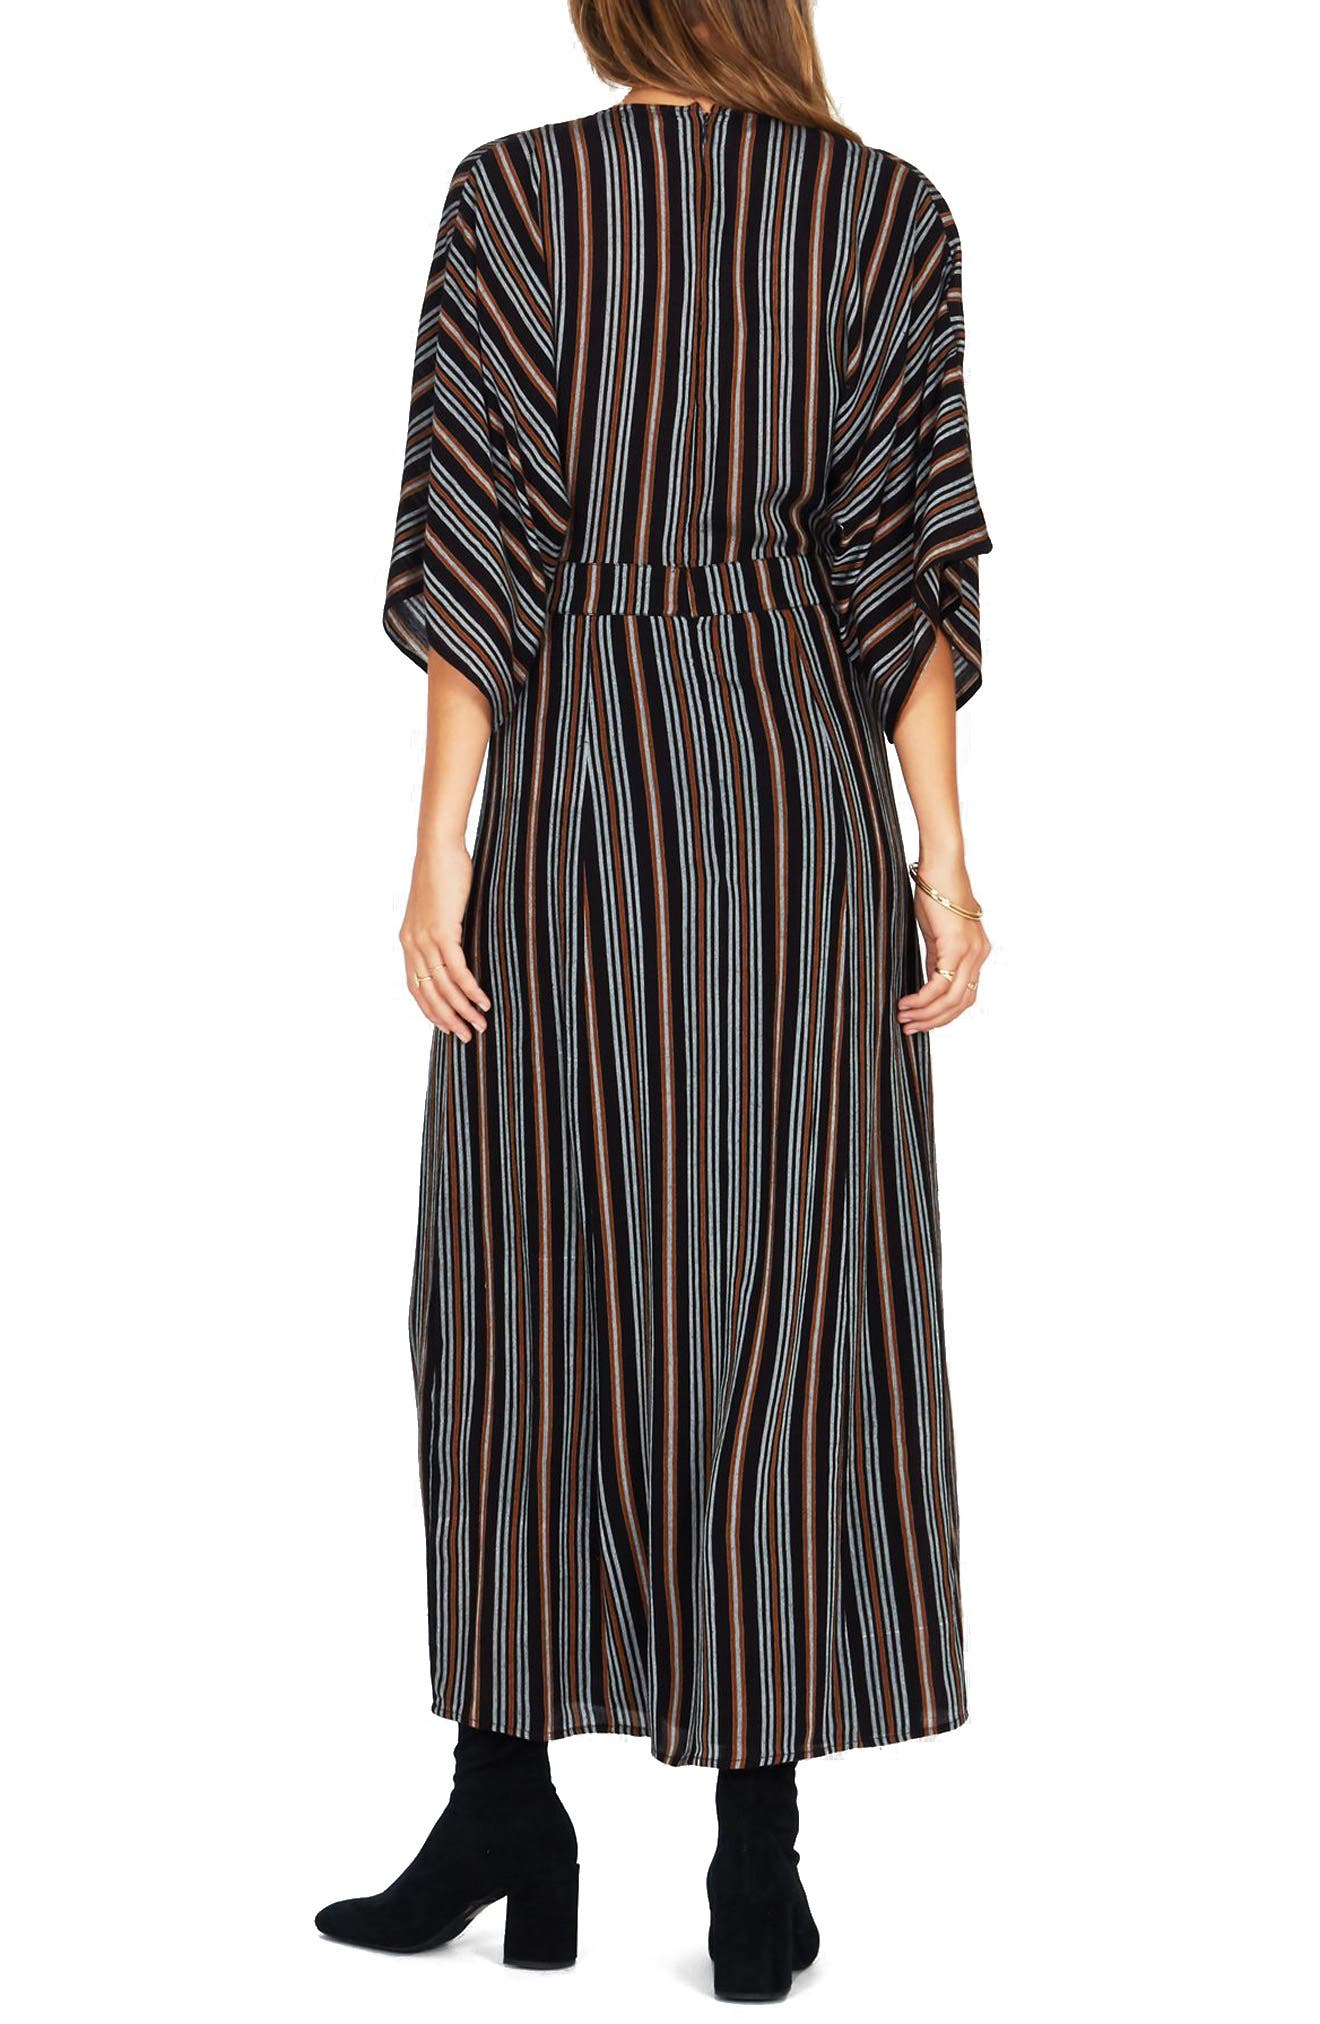 Forever & Day Stripe Maxi Dress,                             Alternate thumbnail 3, color,                             Black